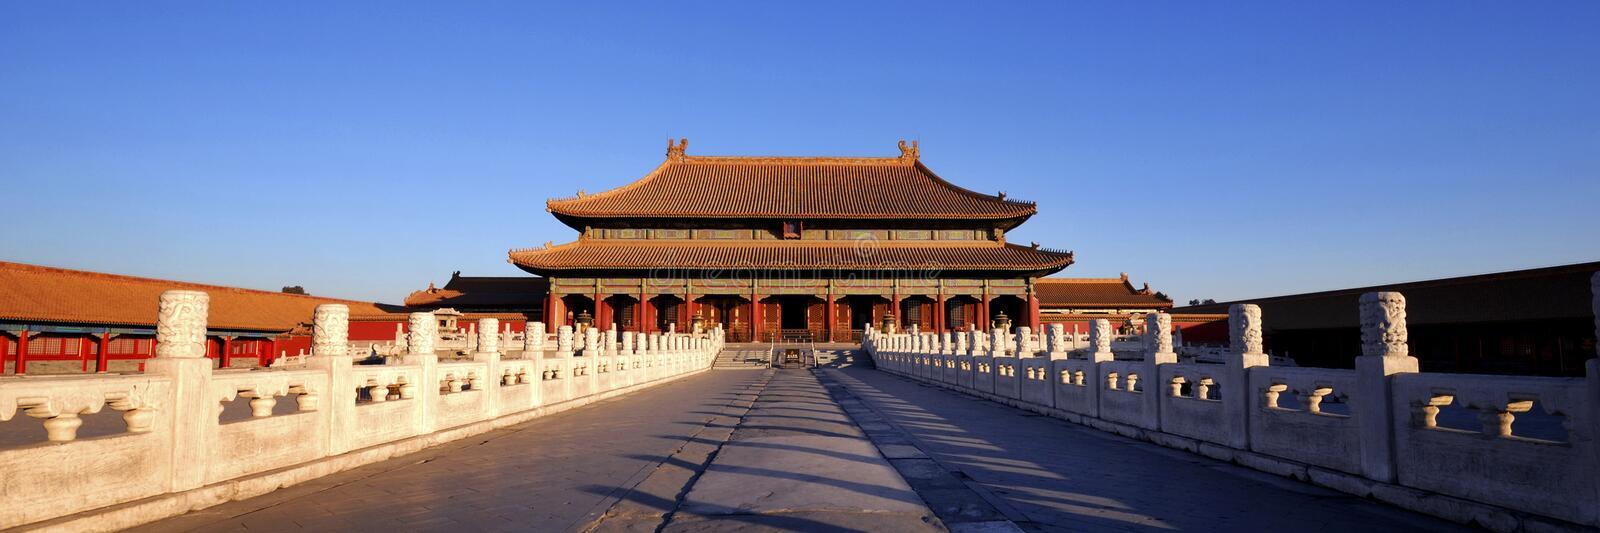 Forbidden City Chinese Culture Ancient Concept stock images